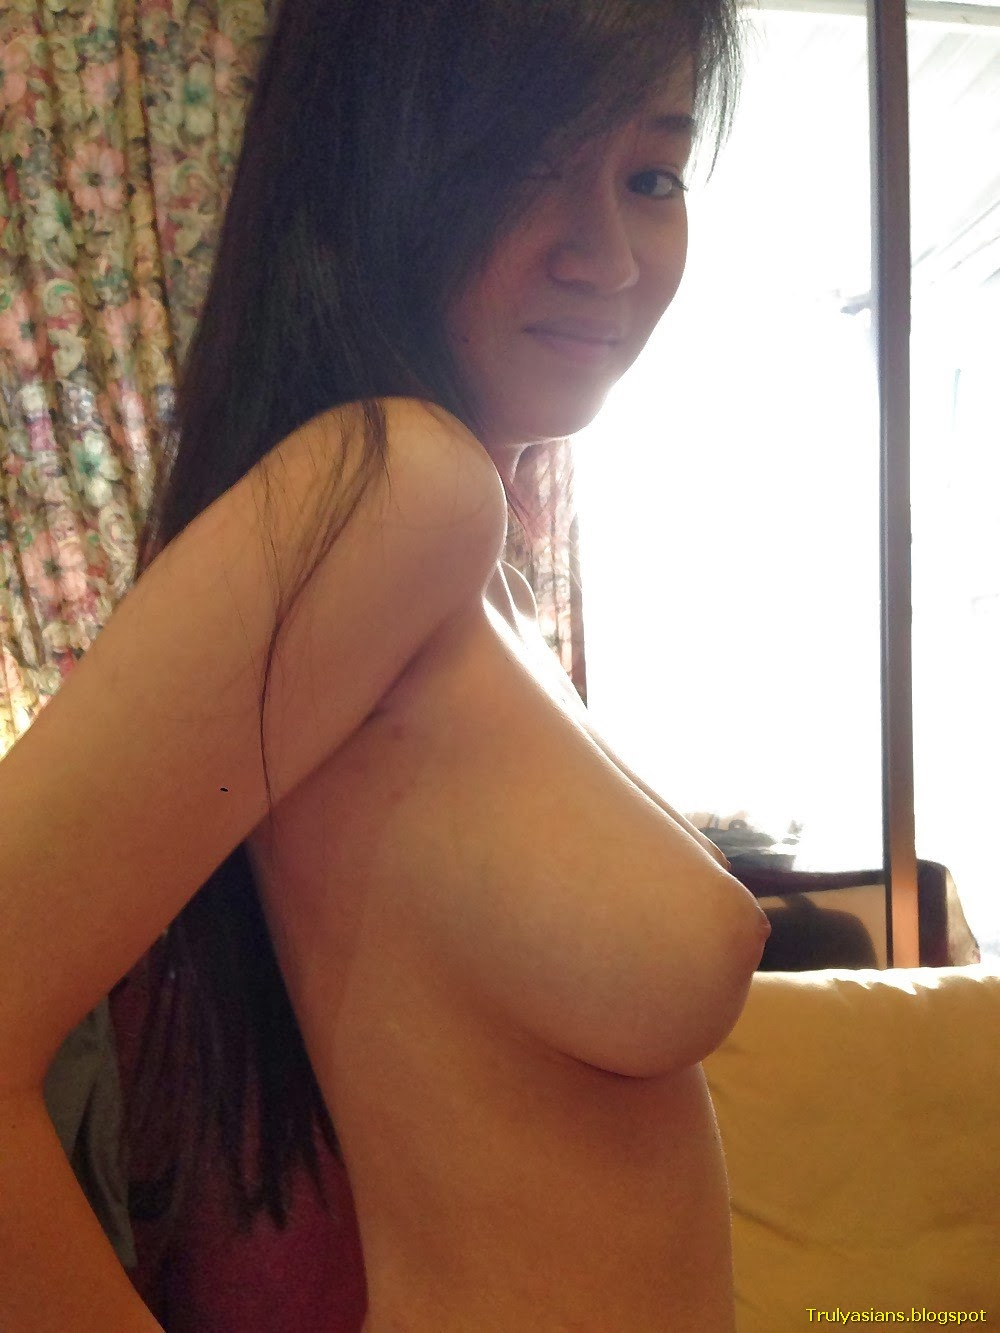 Authoritative Pinay in singapore nude picture